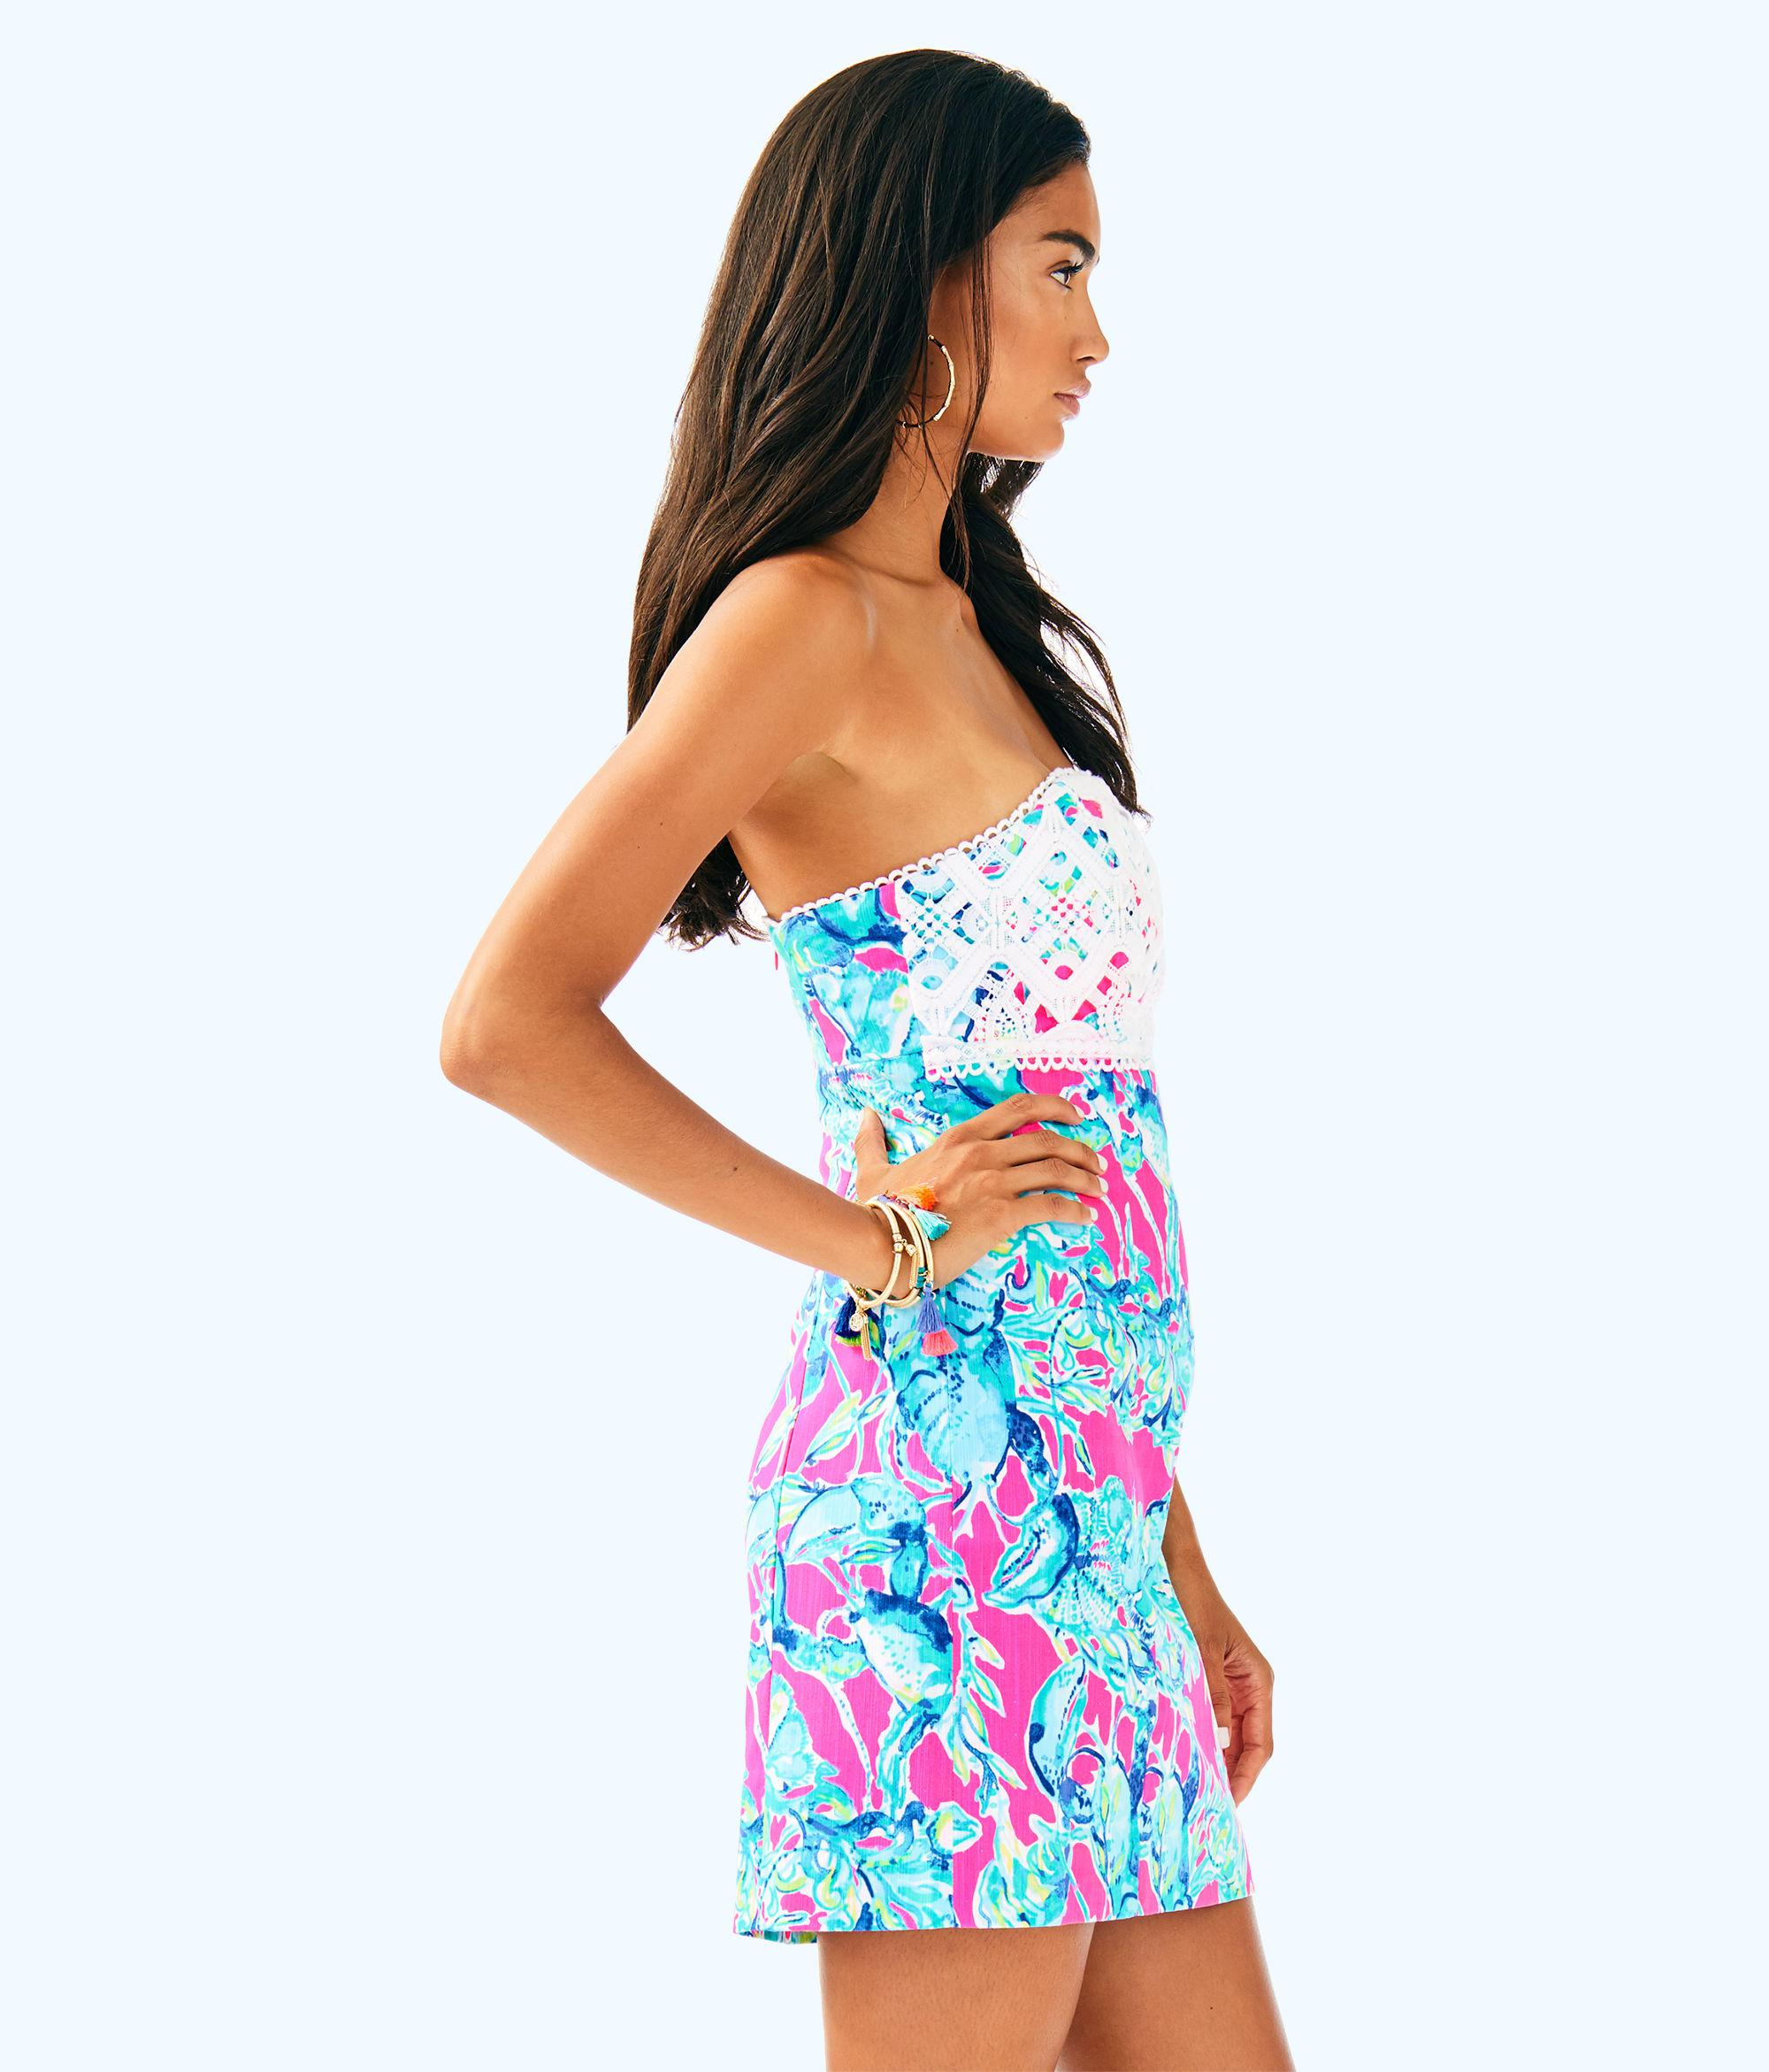 6c76781b2eaef0 Gallery. Previously sold at: Lilly Pulitzer · Women's Summer Dresses